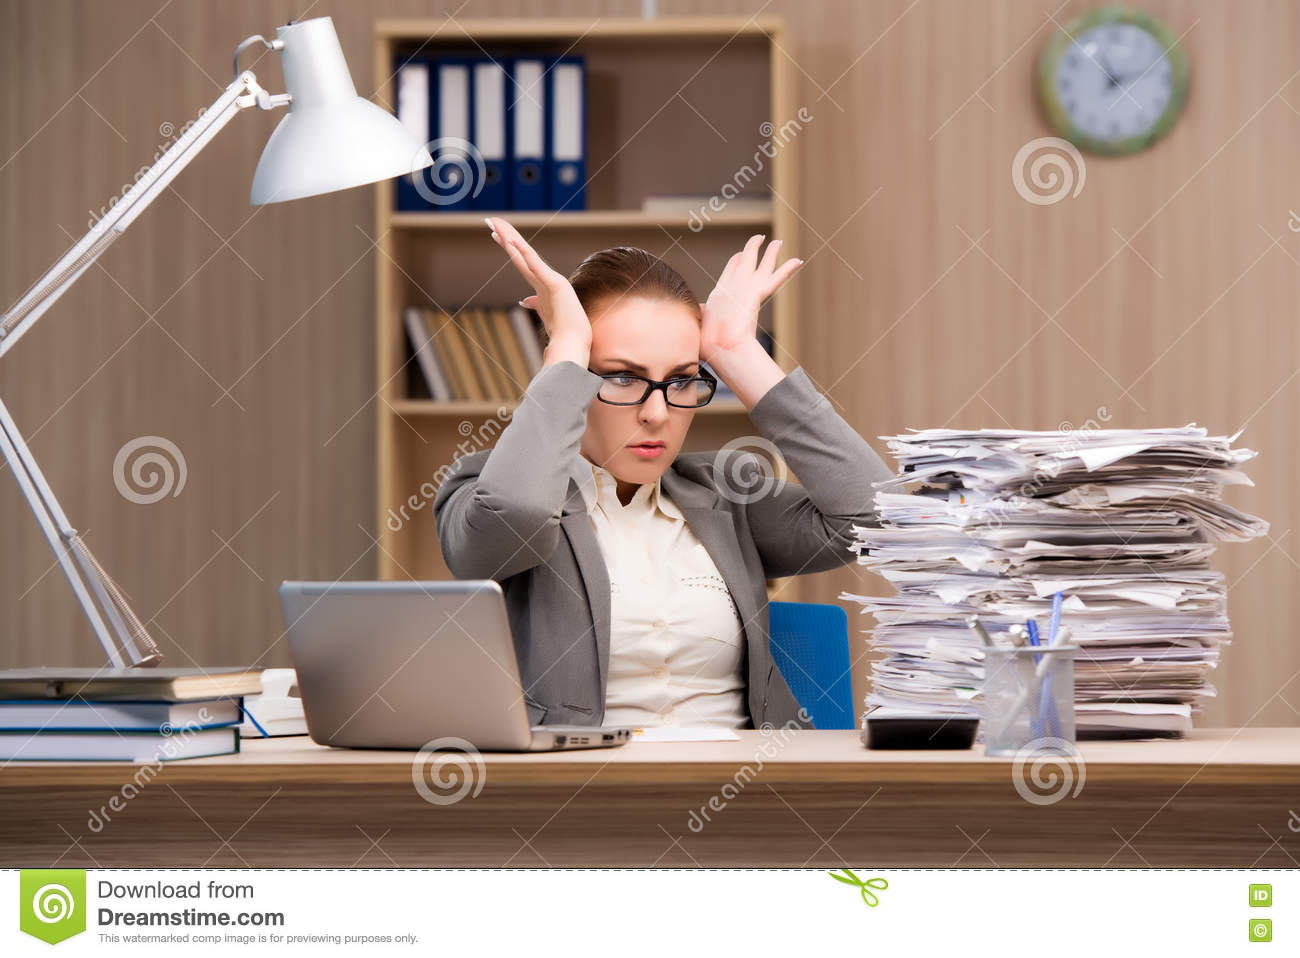 The businesswoman under stress from too much work in the office